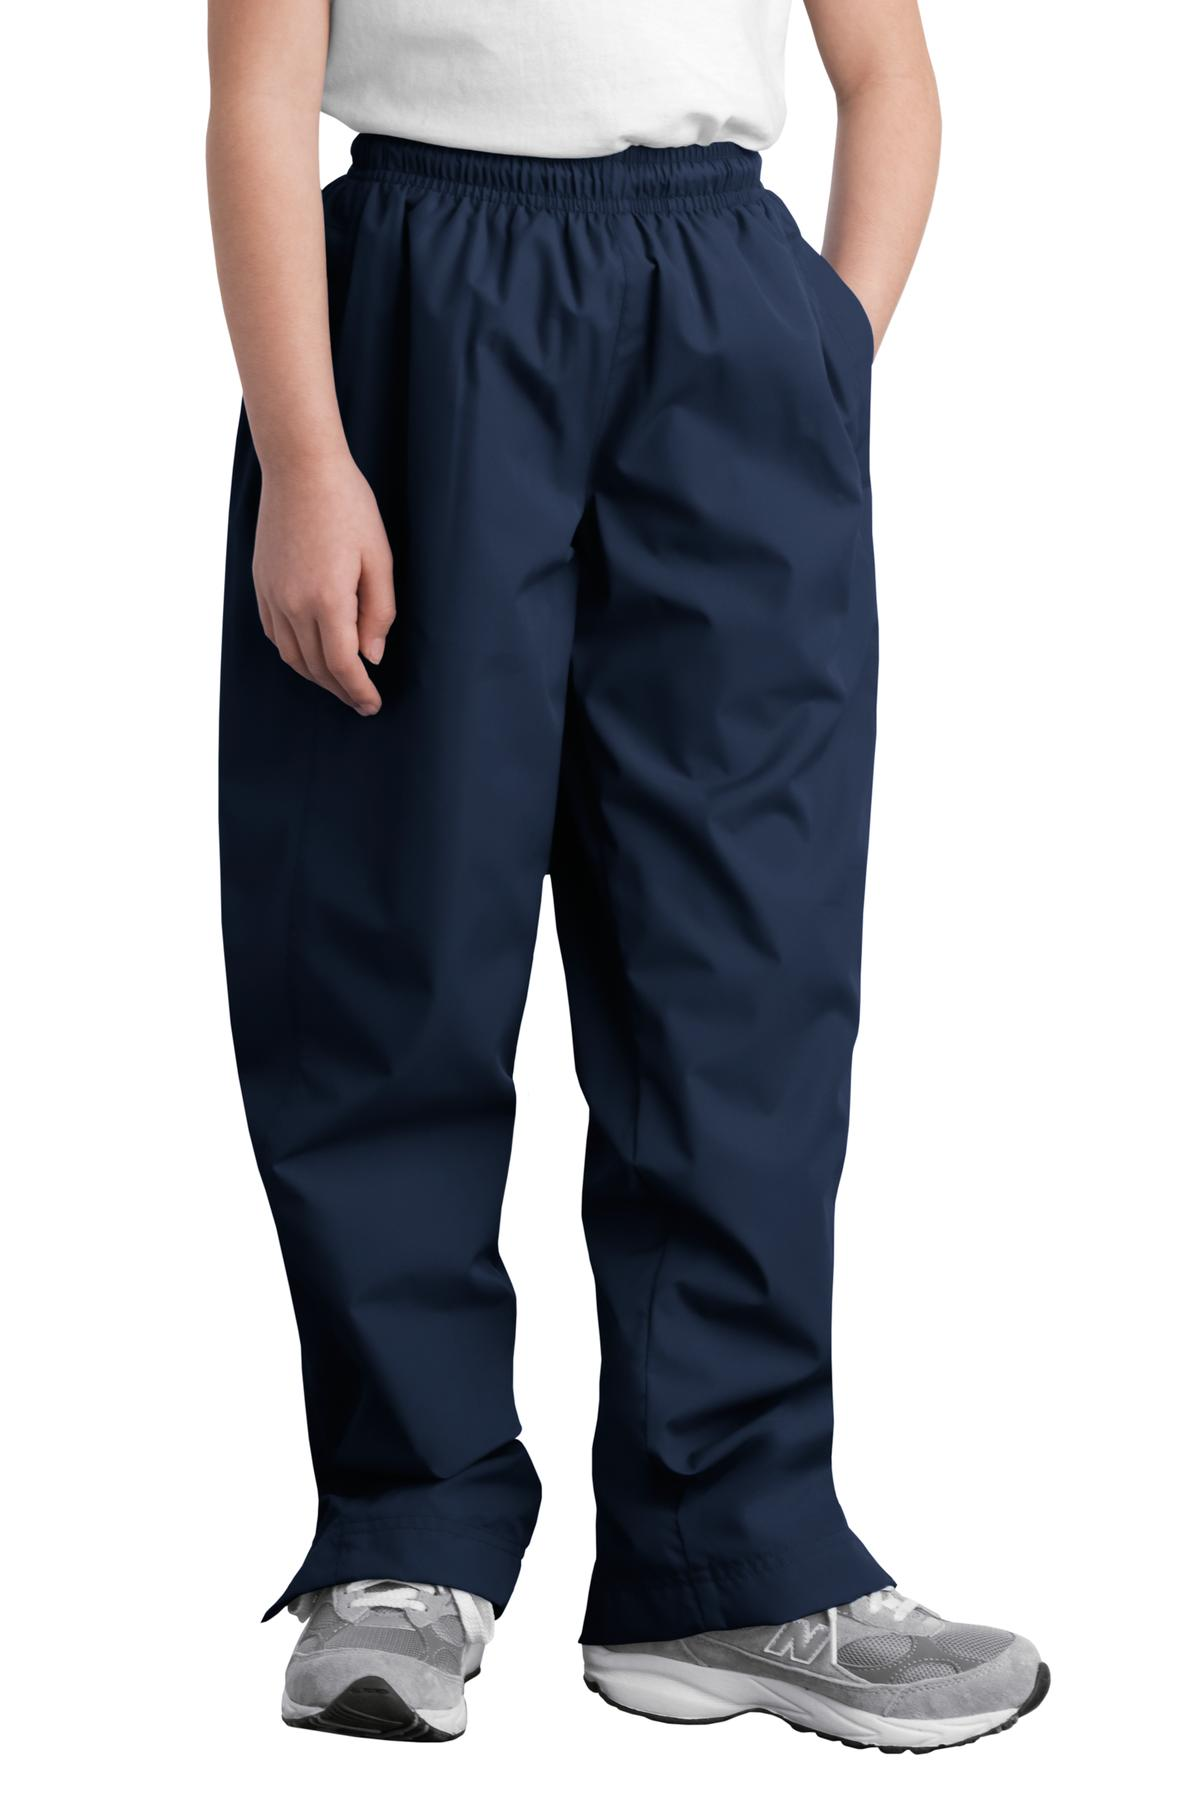 YPST74 Sport-Tek Sweatpants Youth Wind Pant